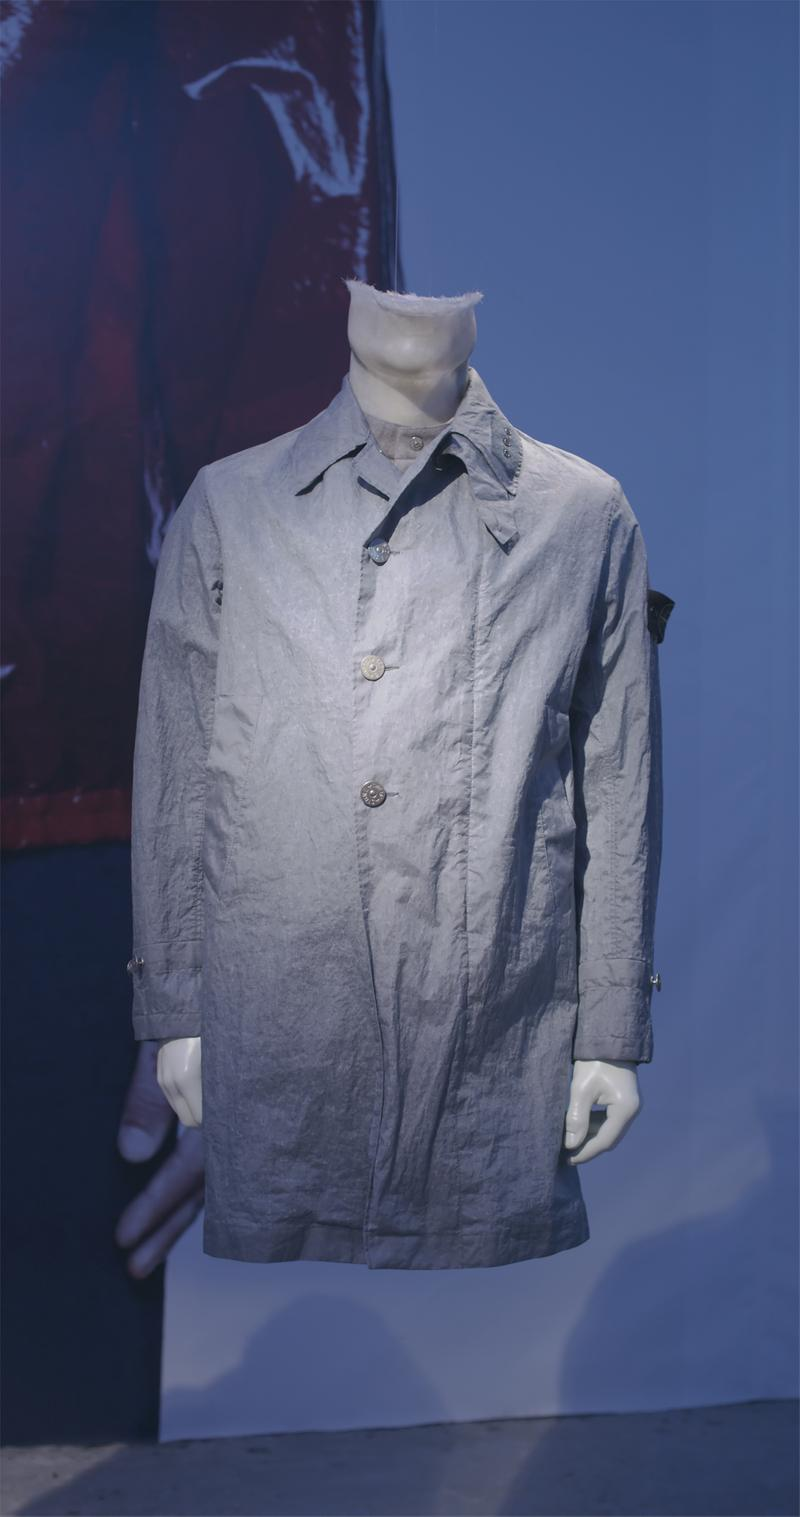 Gray shirt collar jacket with button closure and Stone Island badge on upper left sleeve displayed on mannequin bust